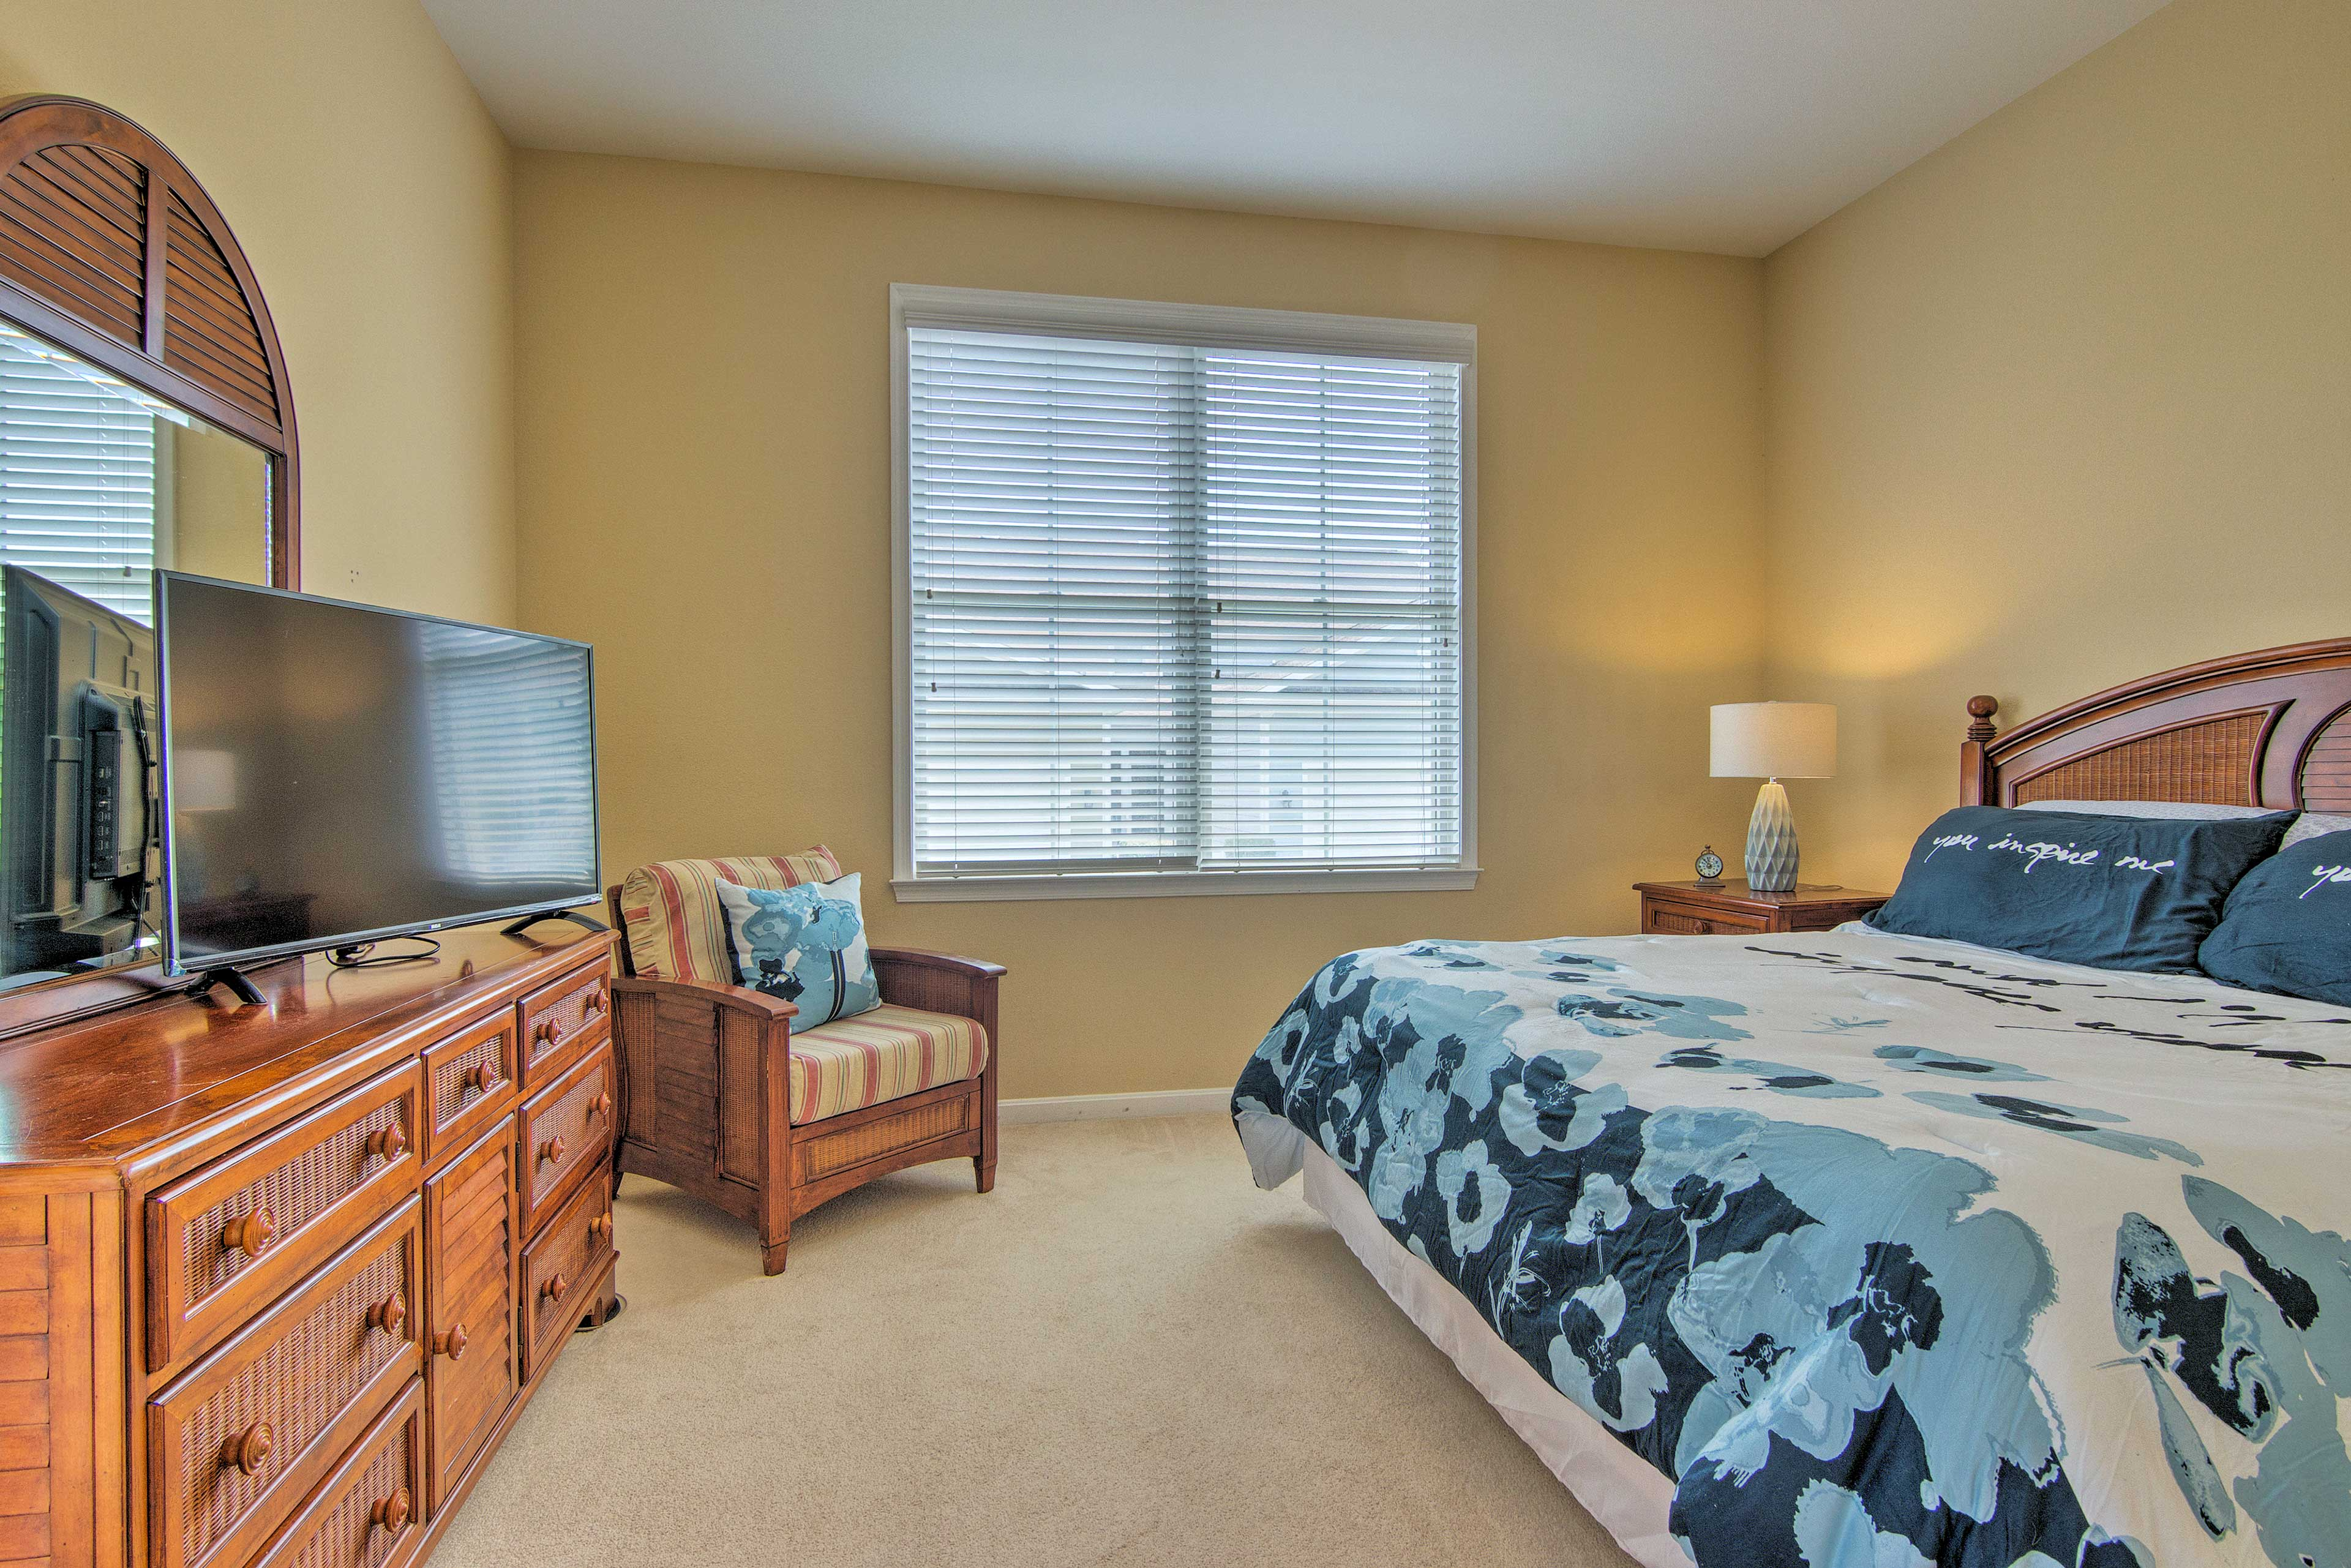 Open the blinds to let the sunlights stream in as you nap in the plush bed.